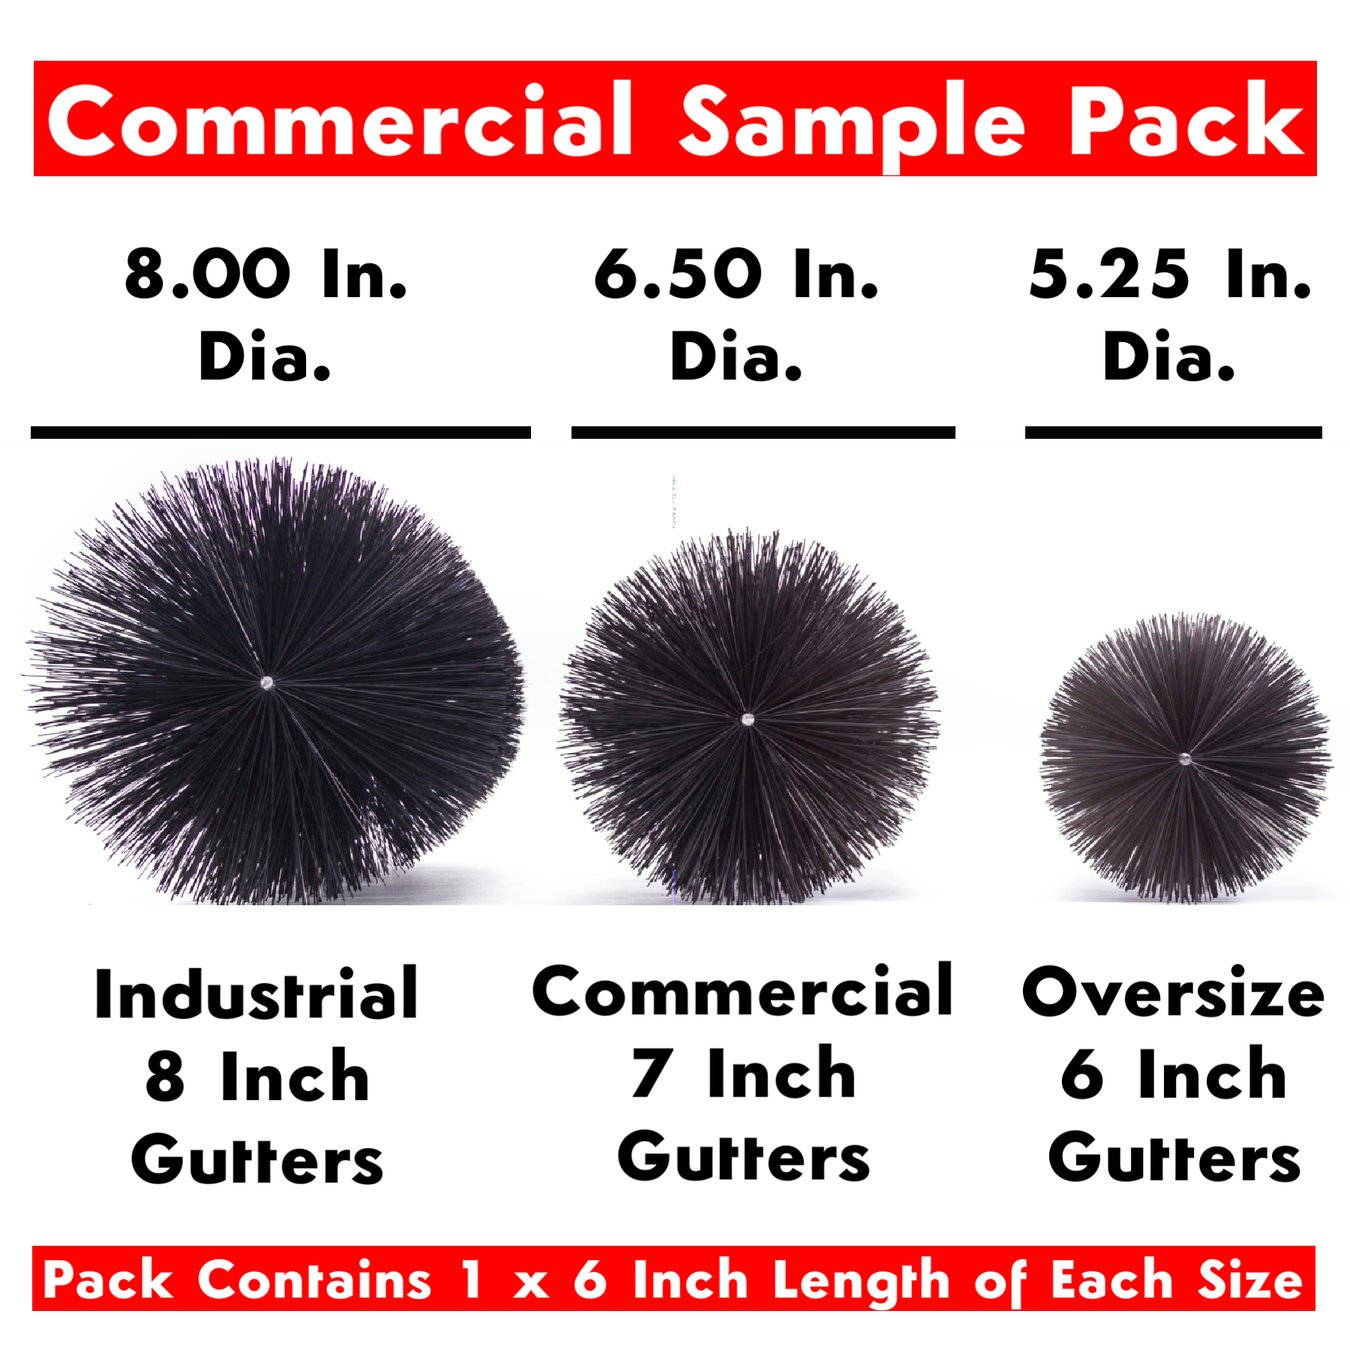 Commercial Sample Pack - 8.00, 6.50, 5.25 Inch Diameter Brushes - GutterBrush